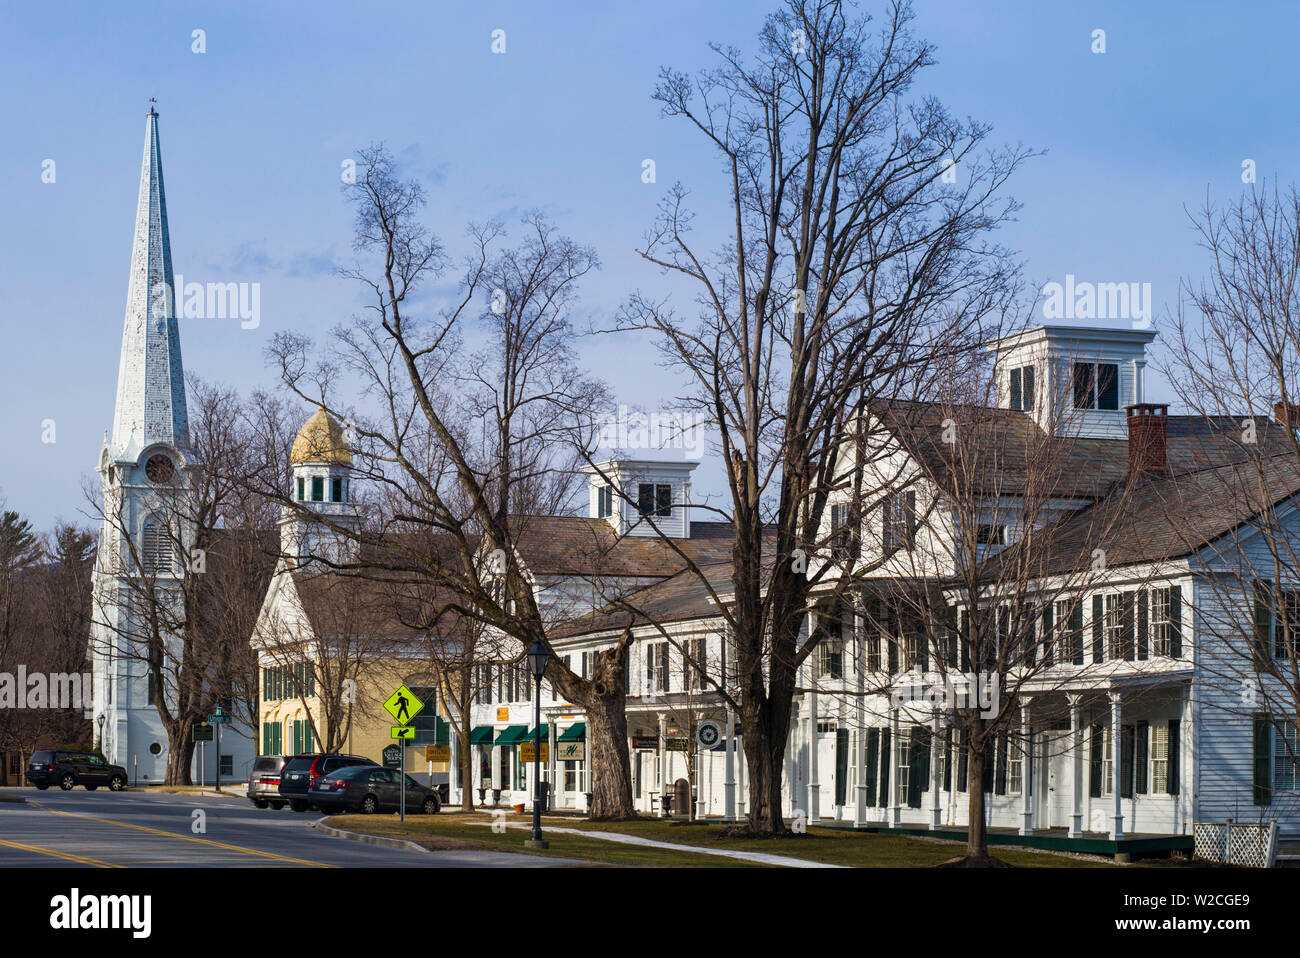 USA, Manchester Center, village view - Stock Image